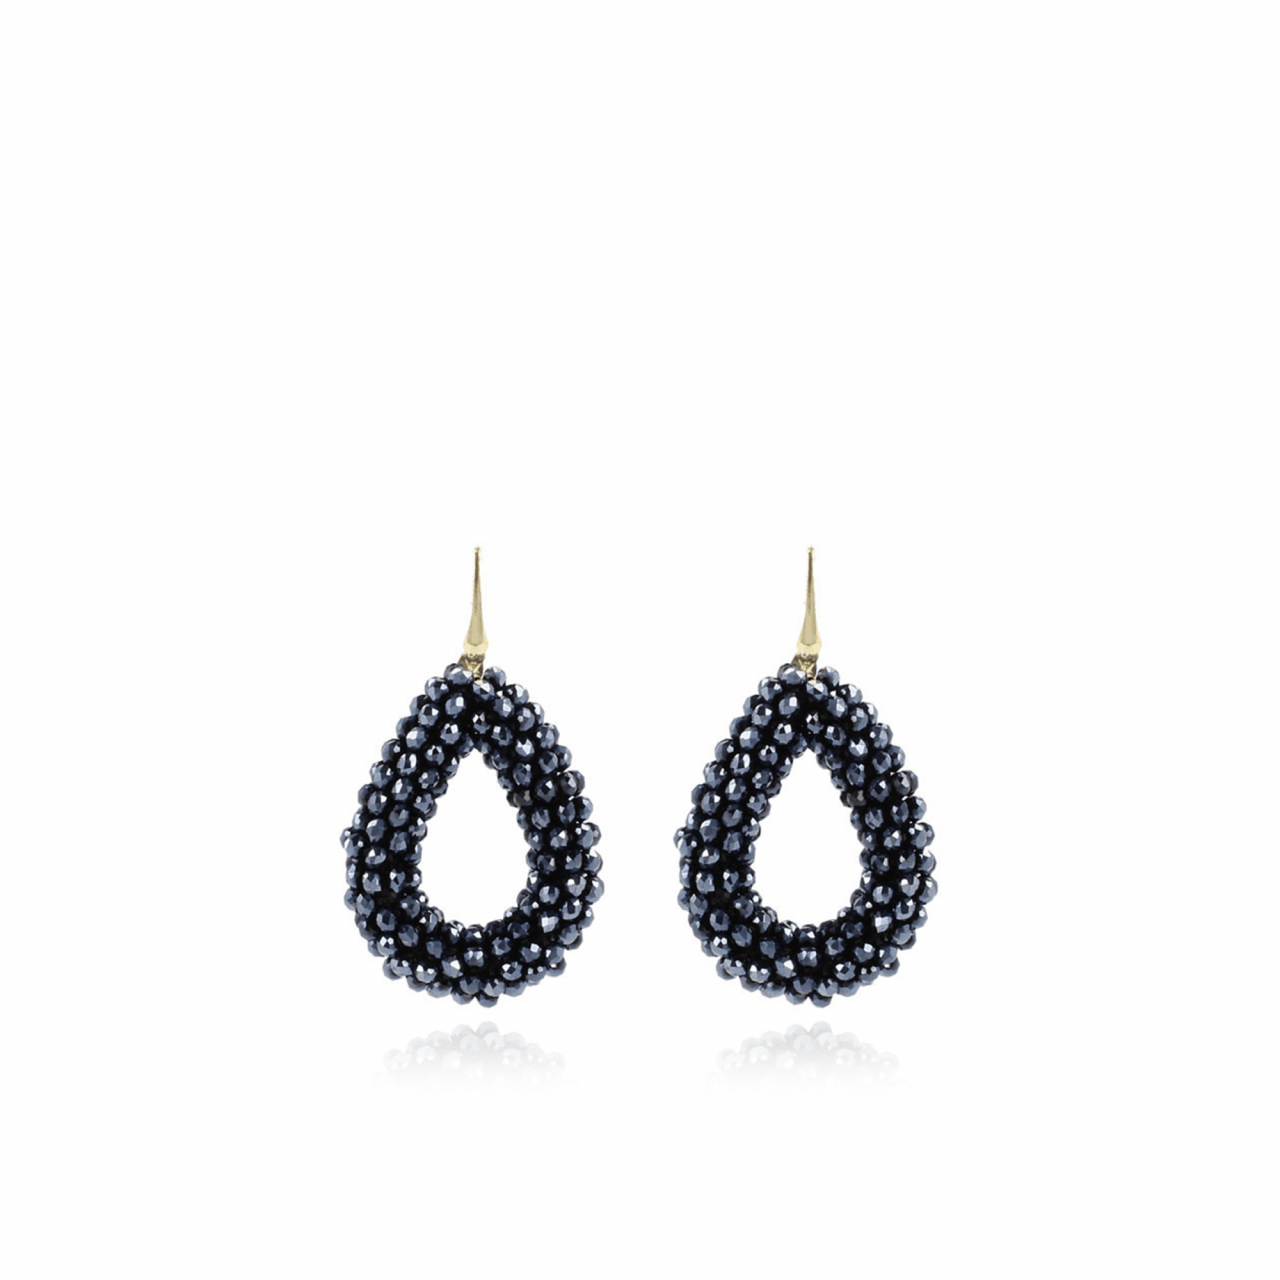 Metallic blue drop glassberry L earrings